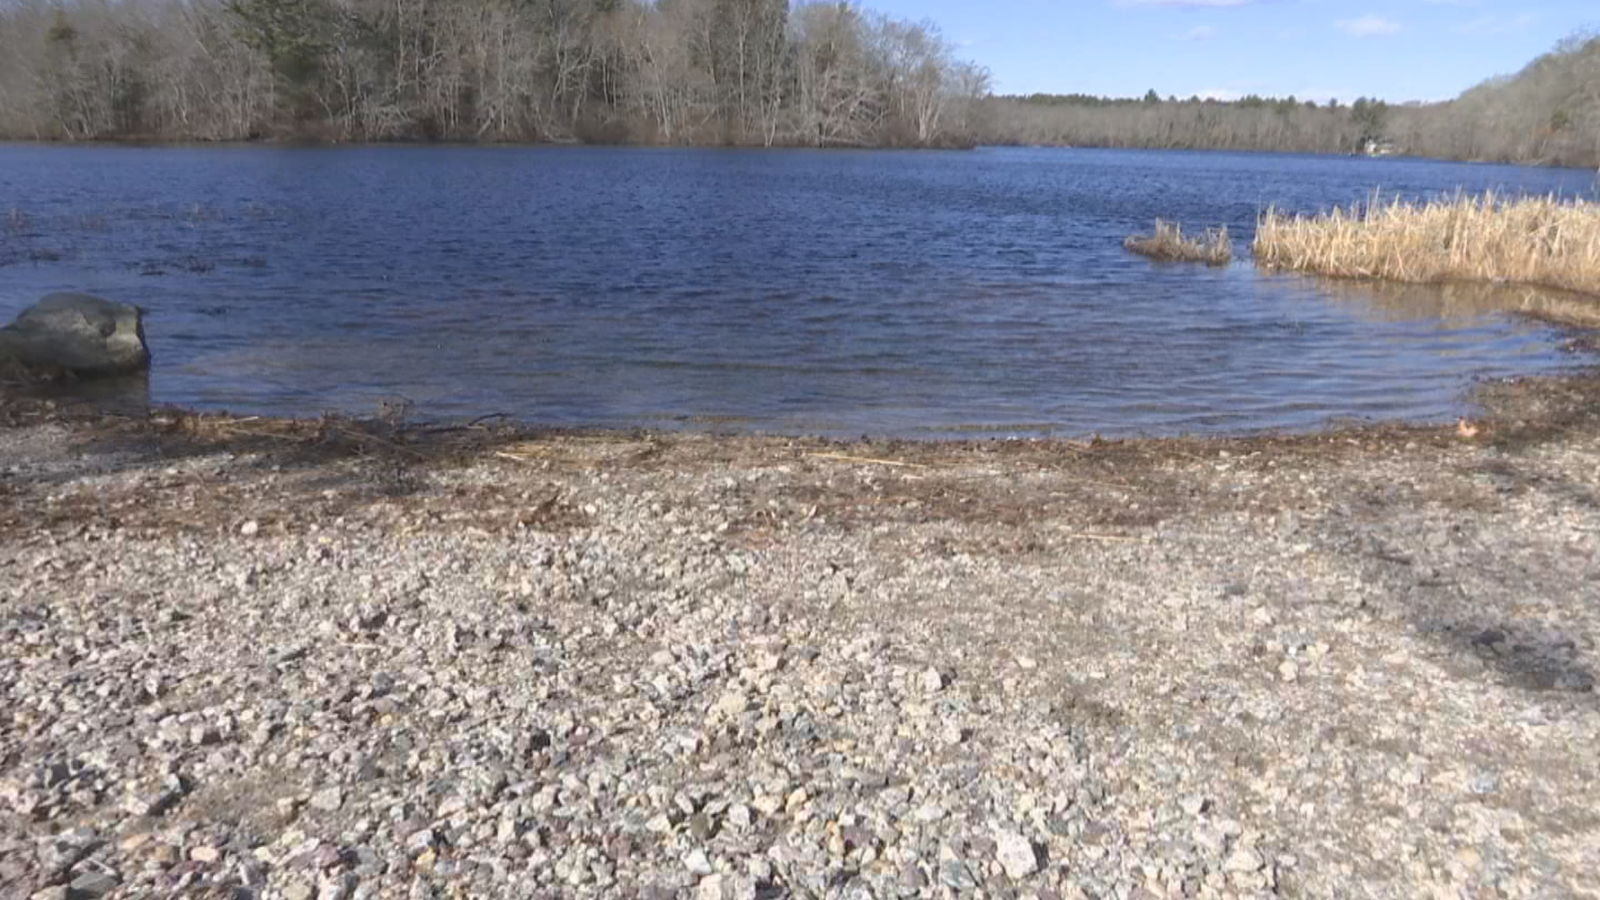 The water quality in Rhode Island is improving, but it still needs volunteer monitoring. (WJAR)